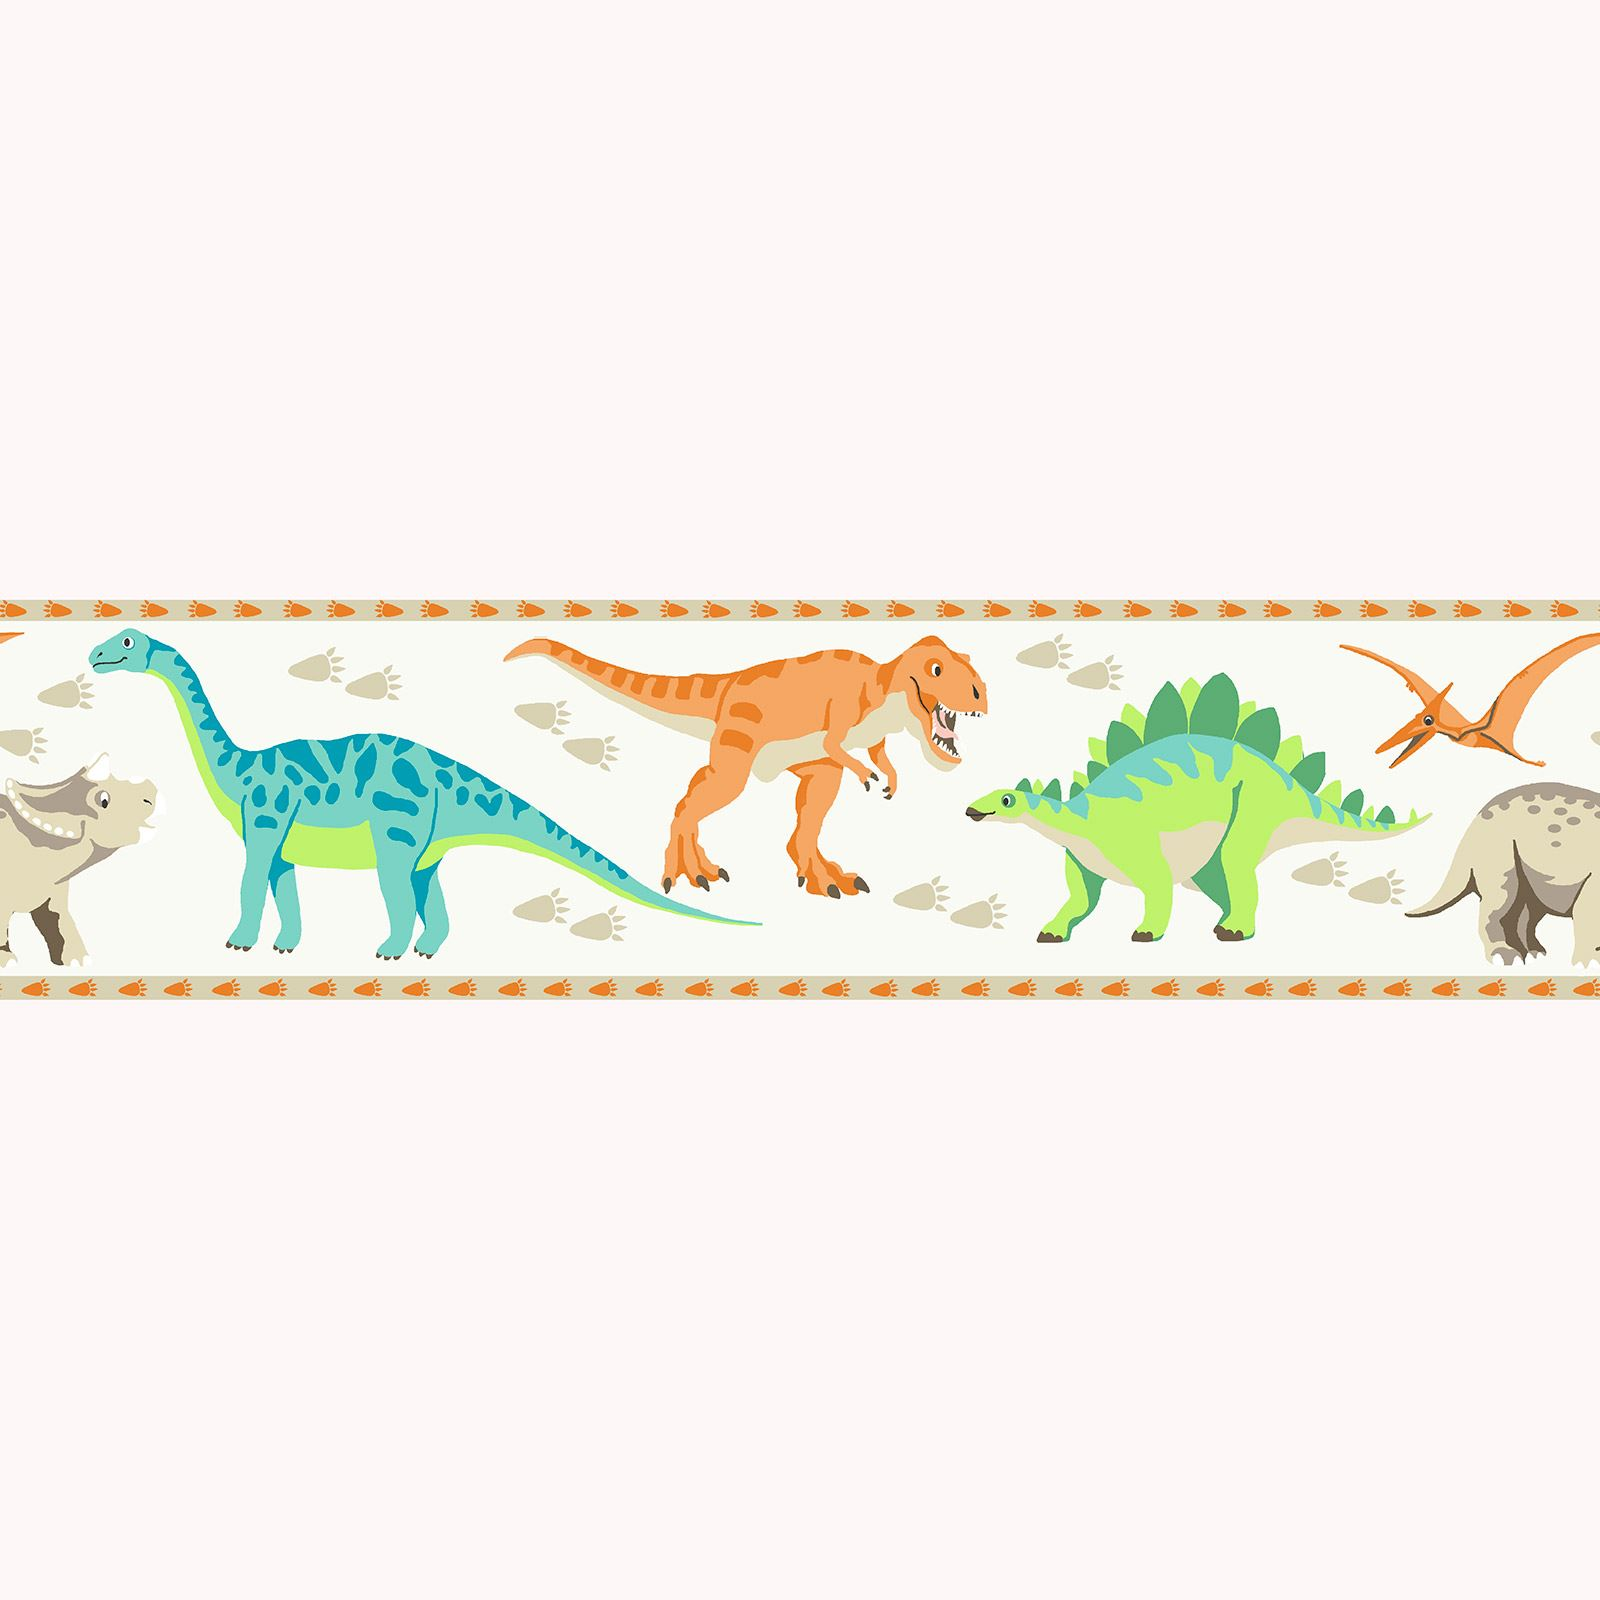 Details about CHILDRENS MATCHING DUVET COVER SETS CURTAINS WALLPAPER  BORDERS UNICORN DINOSAUR